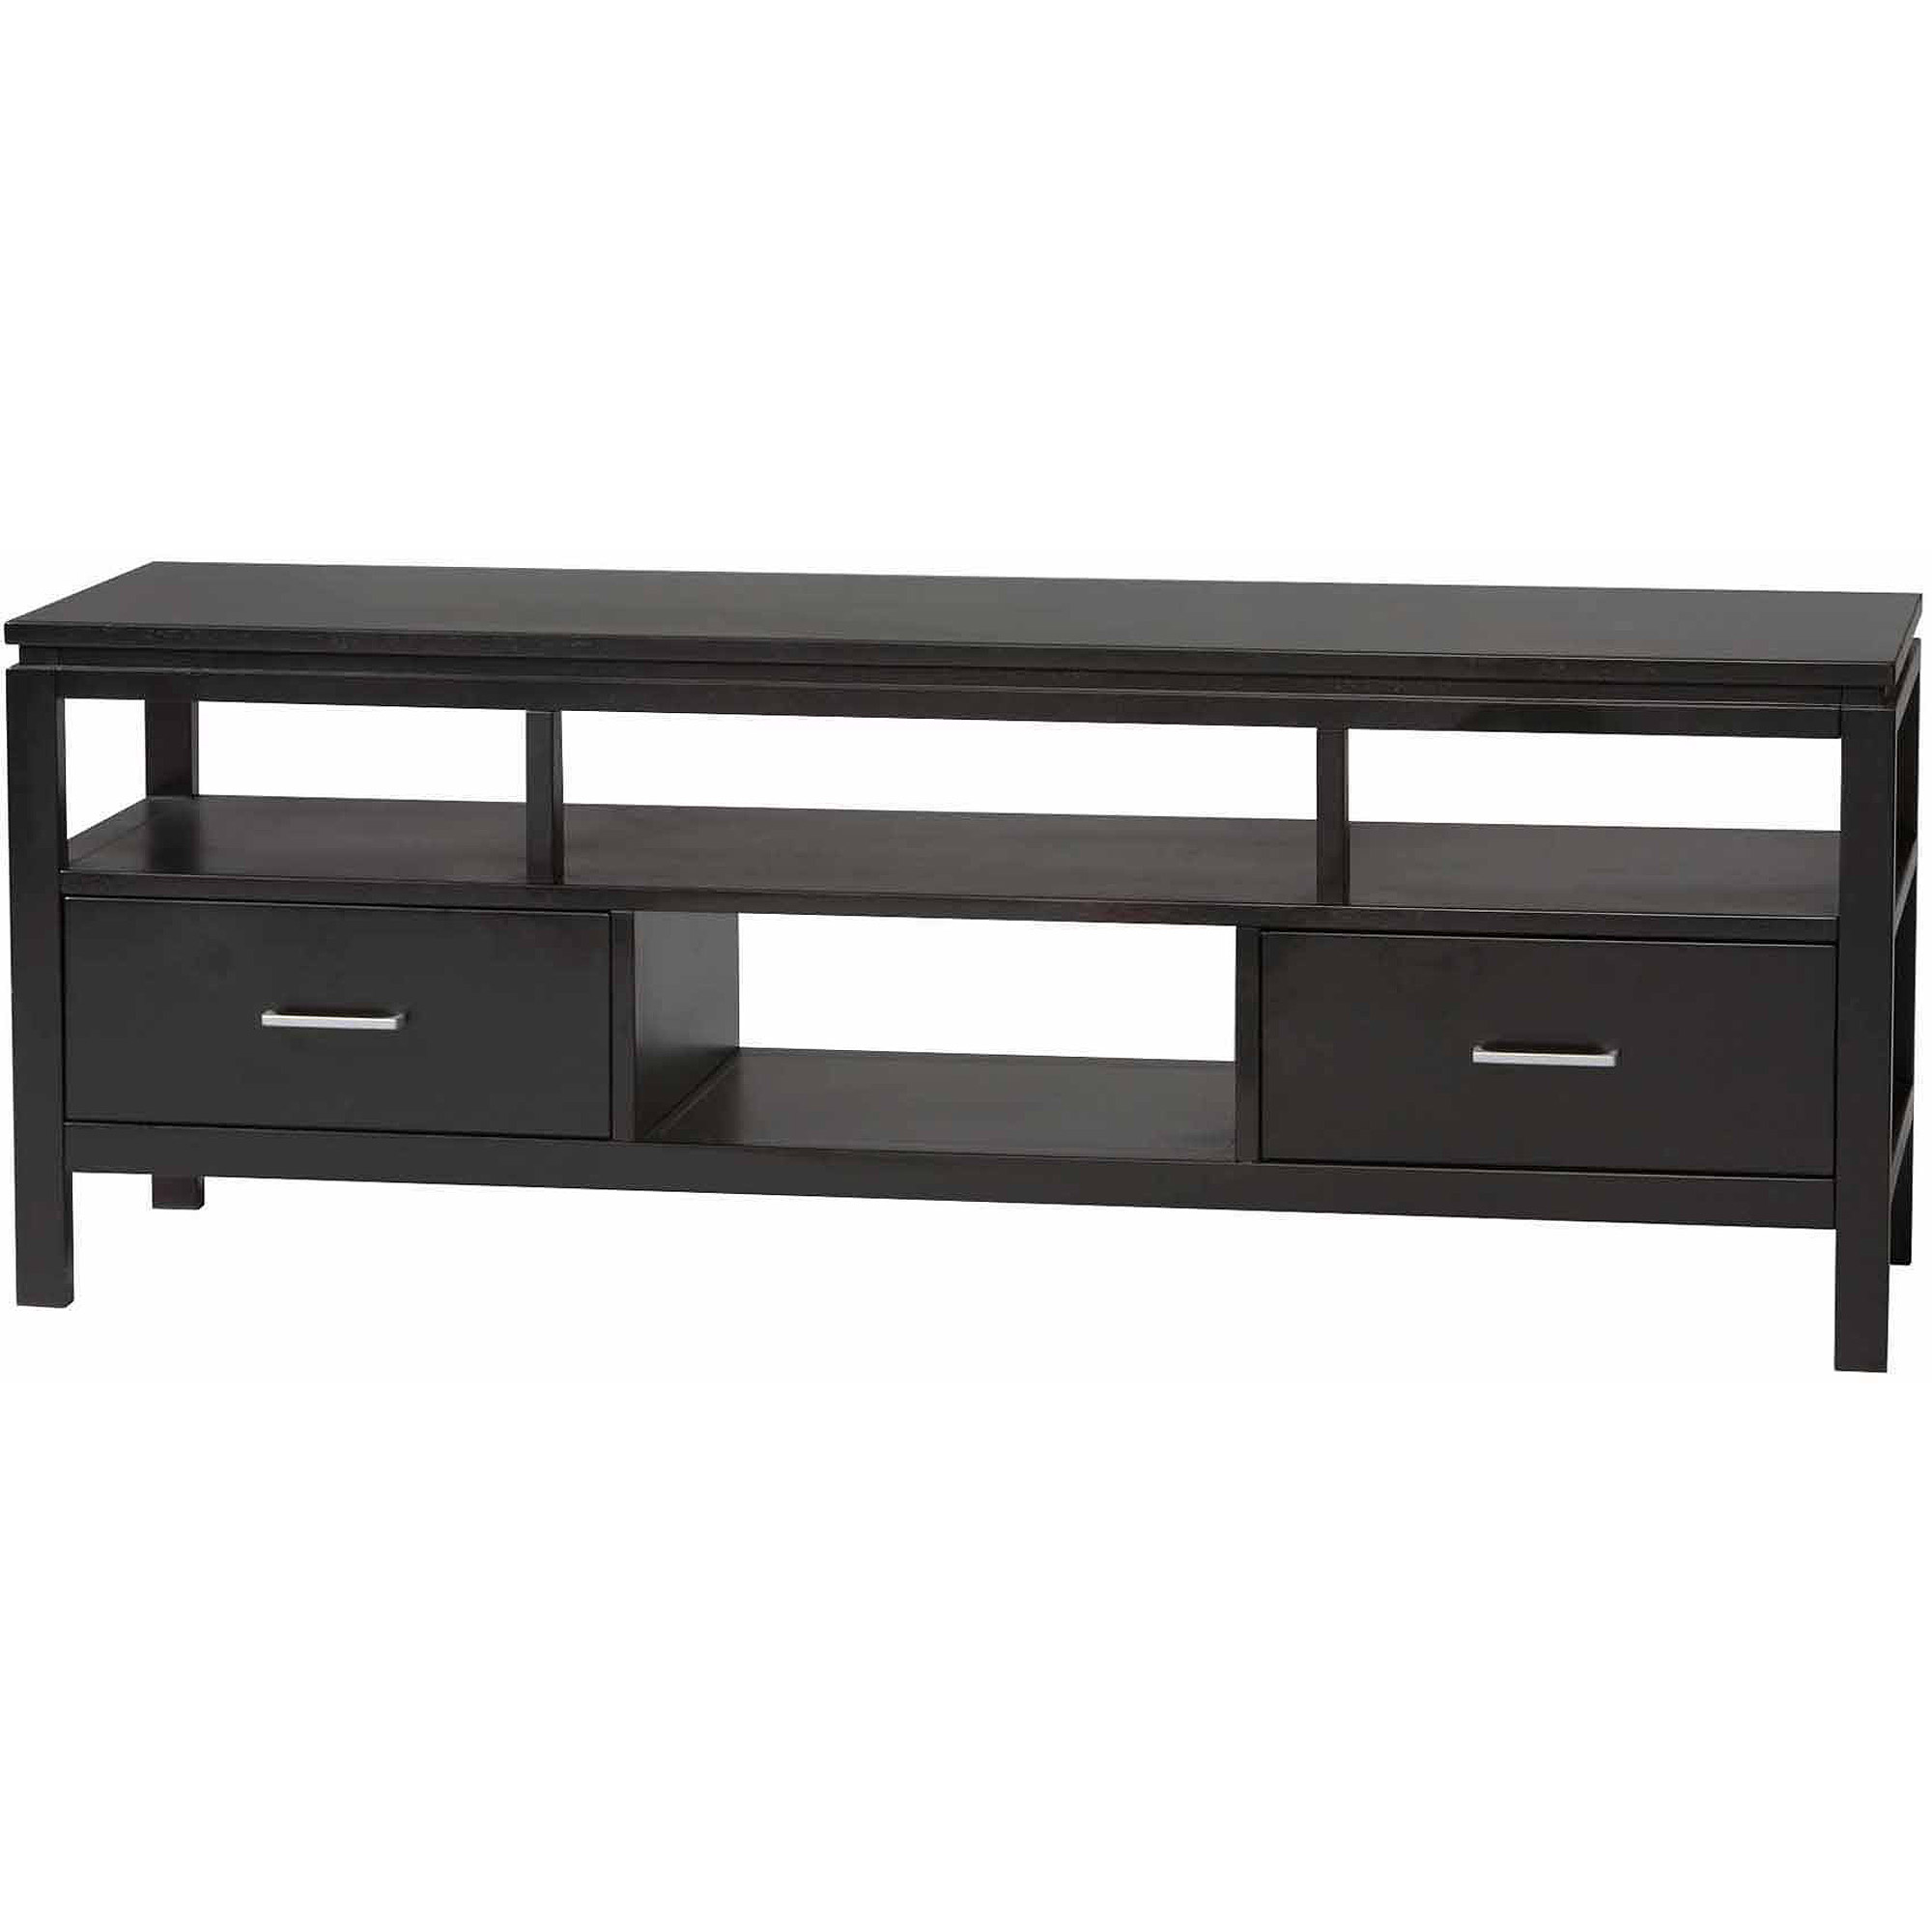 Tv Board Pinterest Linon Sutton Black Plasma Tv Center For Tvs Up To 54 Inches